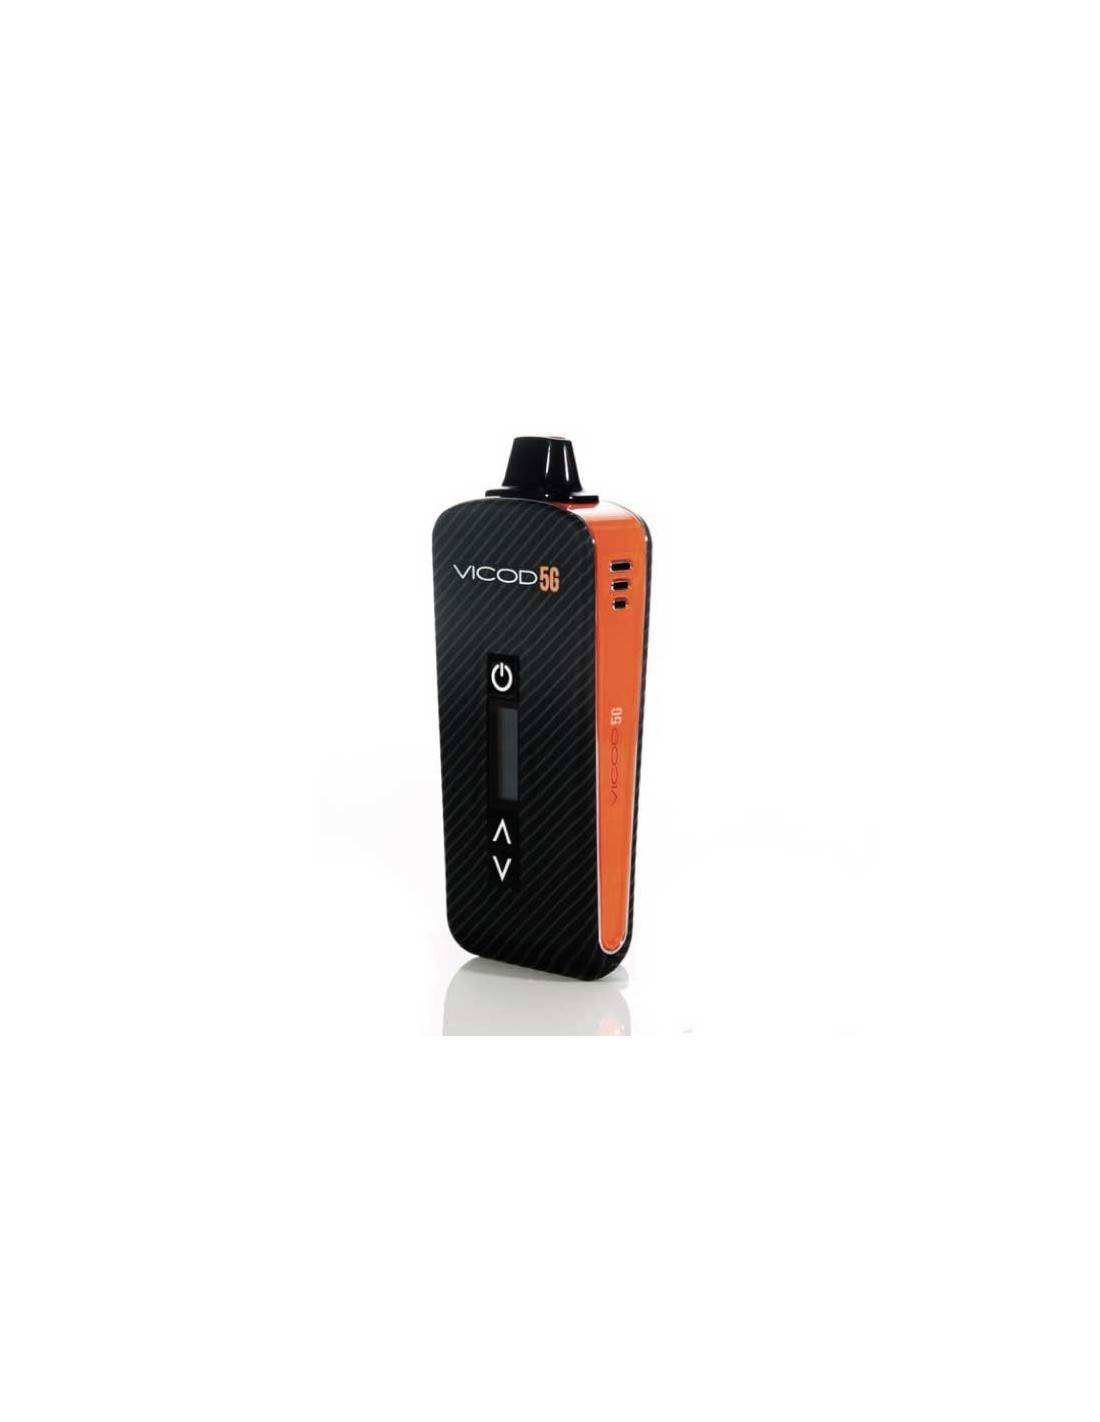 Atmos Vicod 5g 2nd Generation Kit